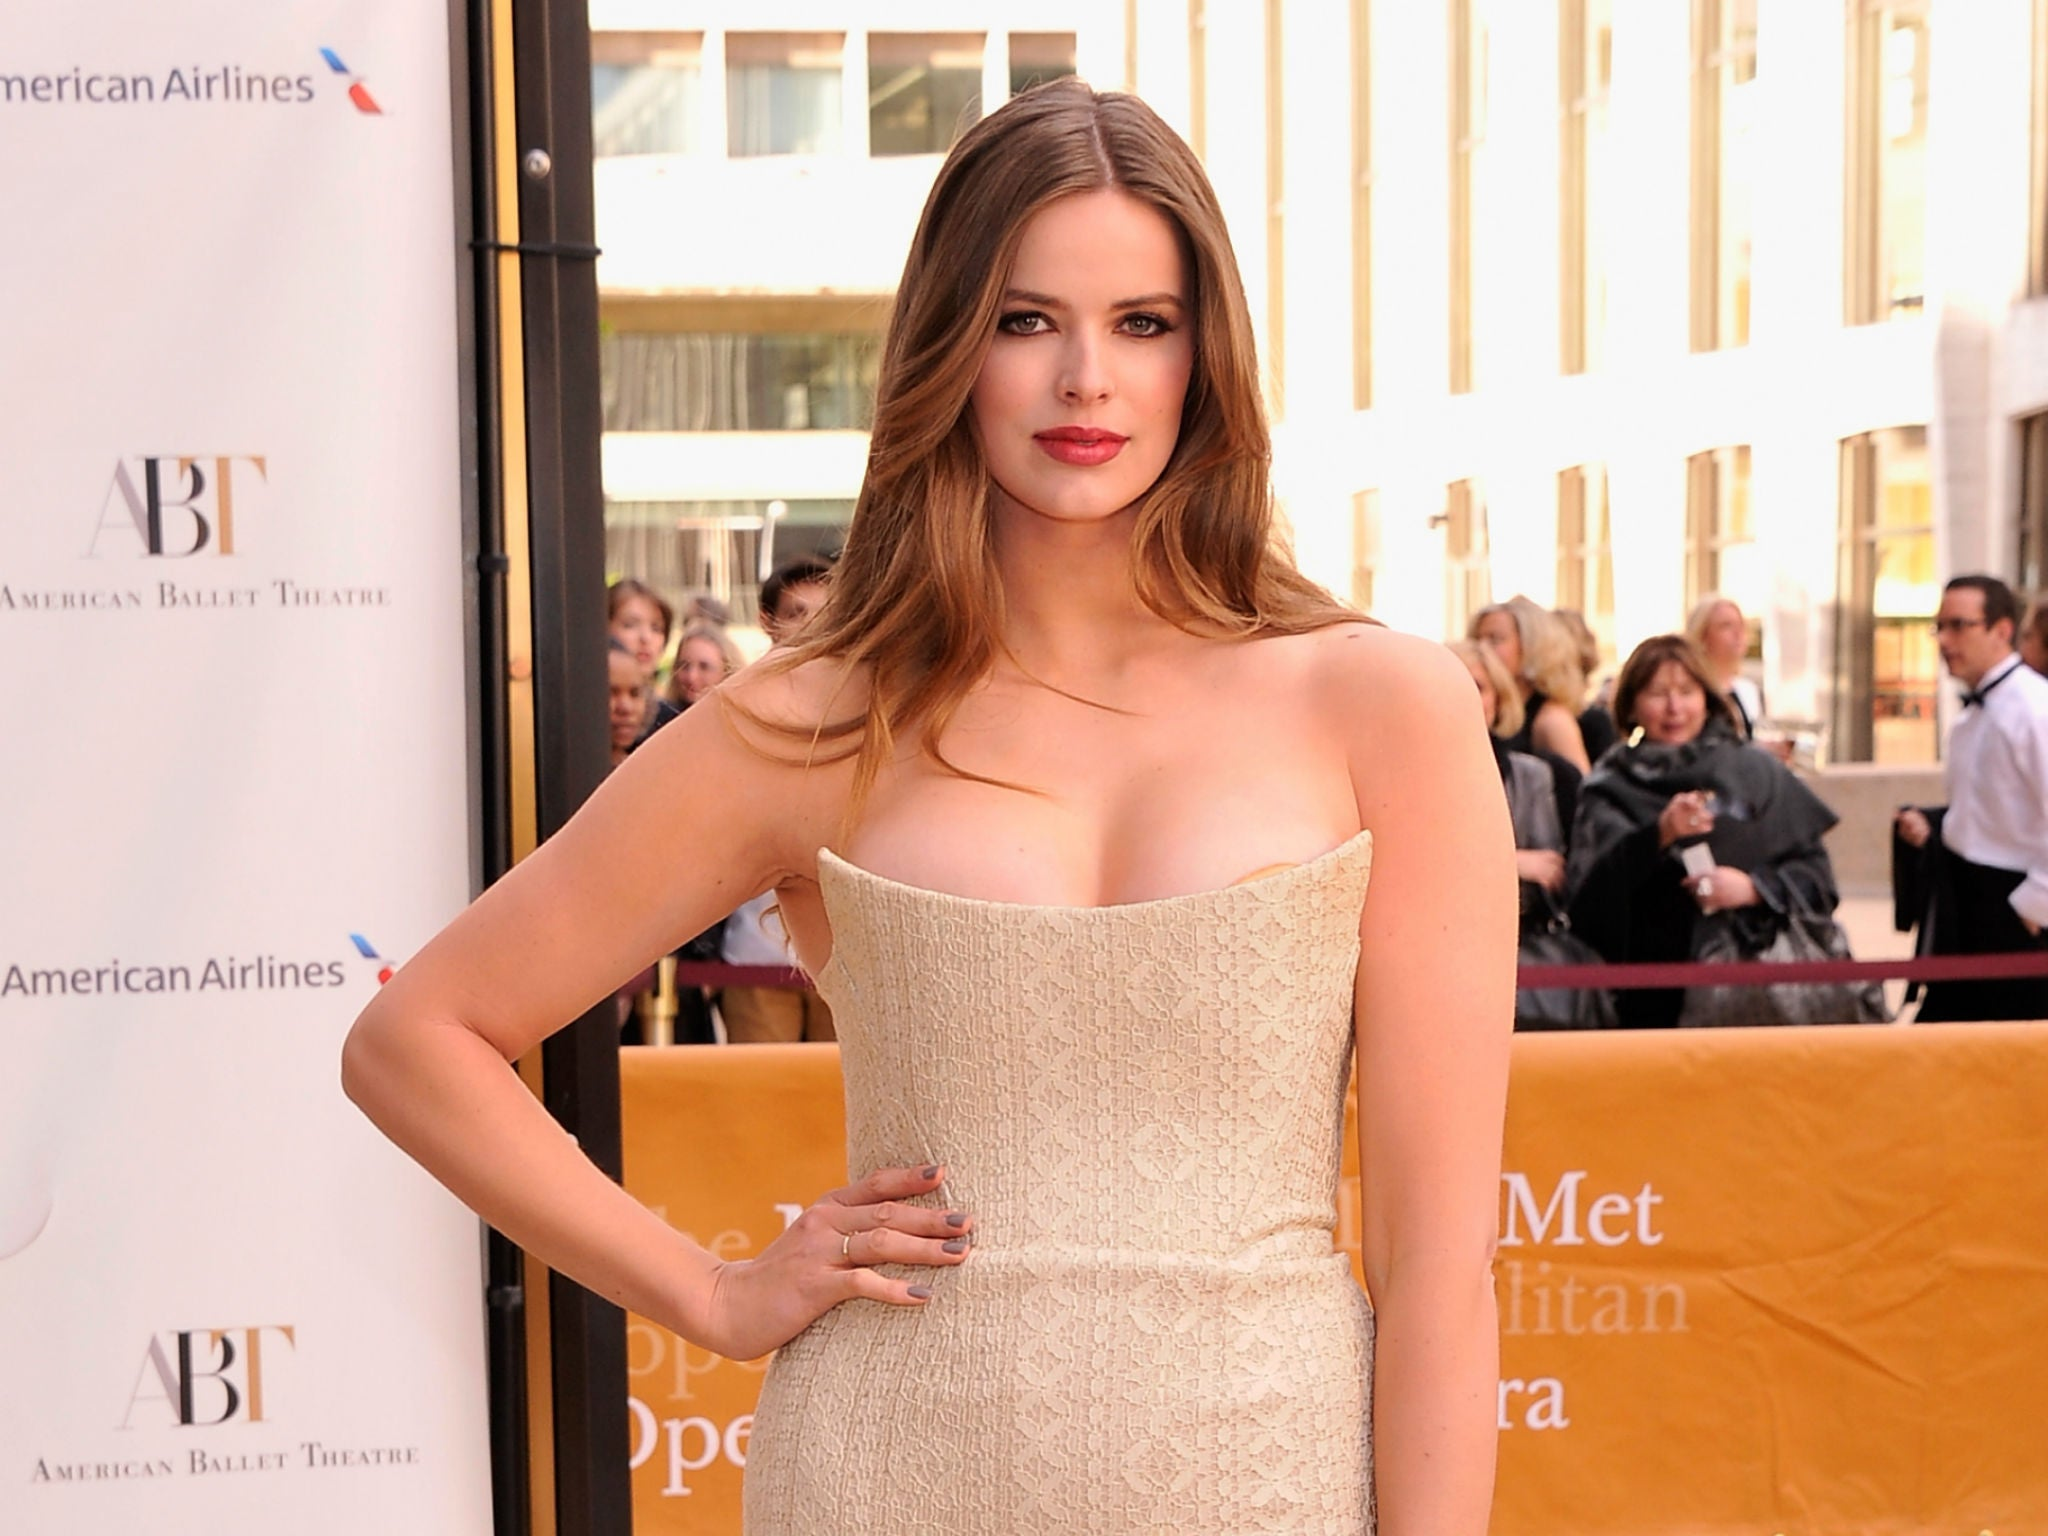 Images Robyn Lawley naked (59 photos), Topless, Bikini, Instagram, cleavage 2018